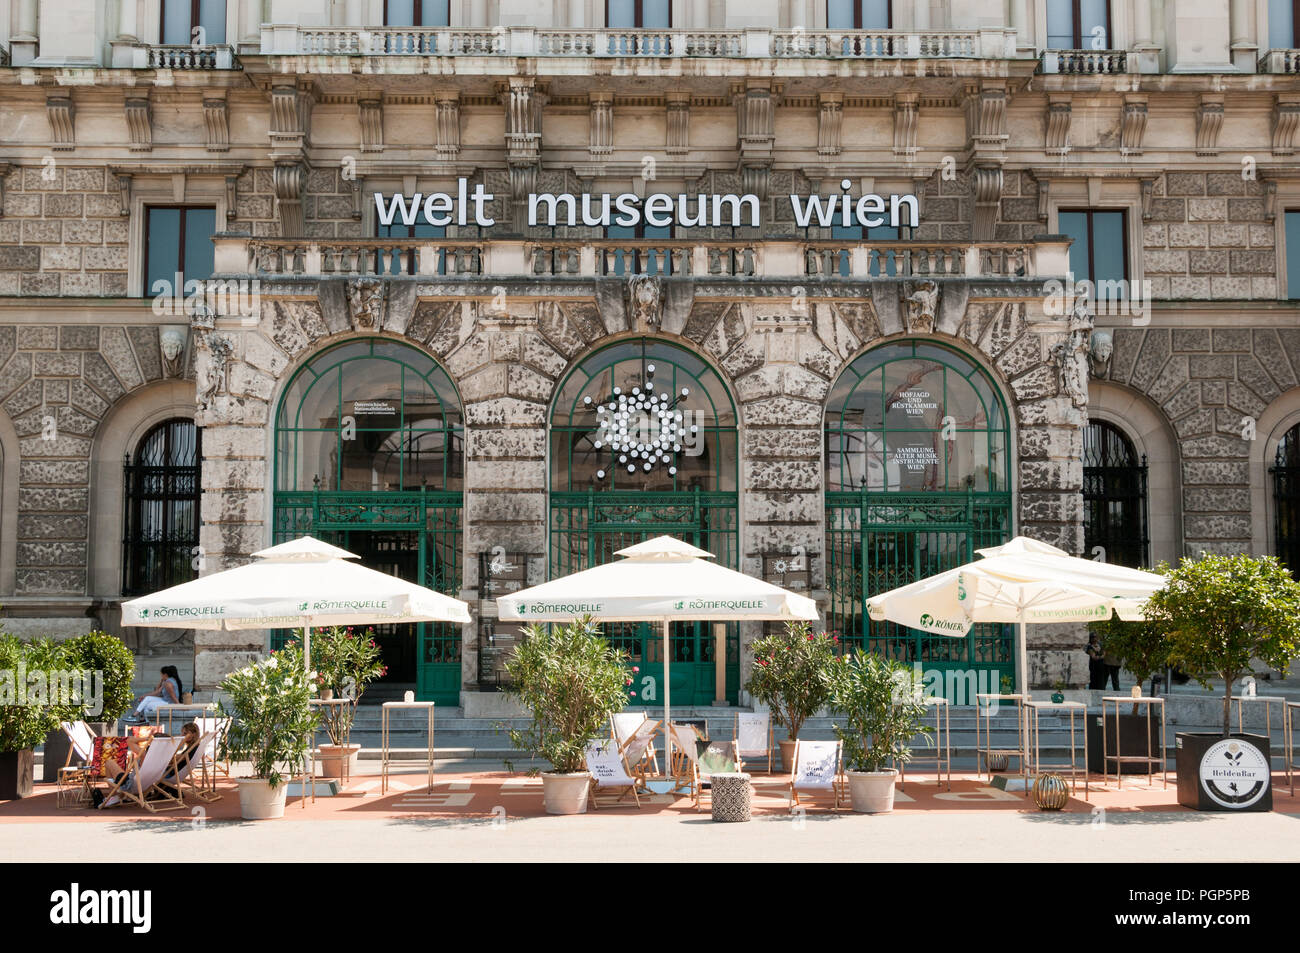 Museum of Ethnology, Vienna, Austria - Stock Image